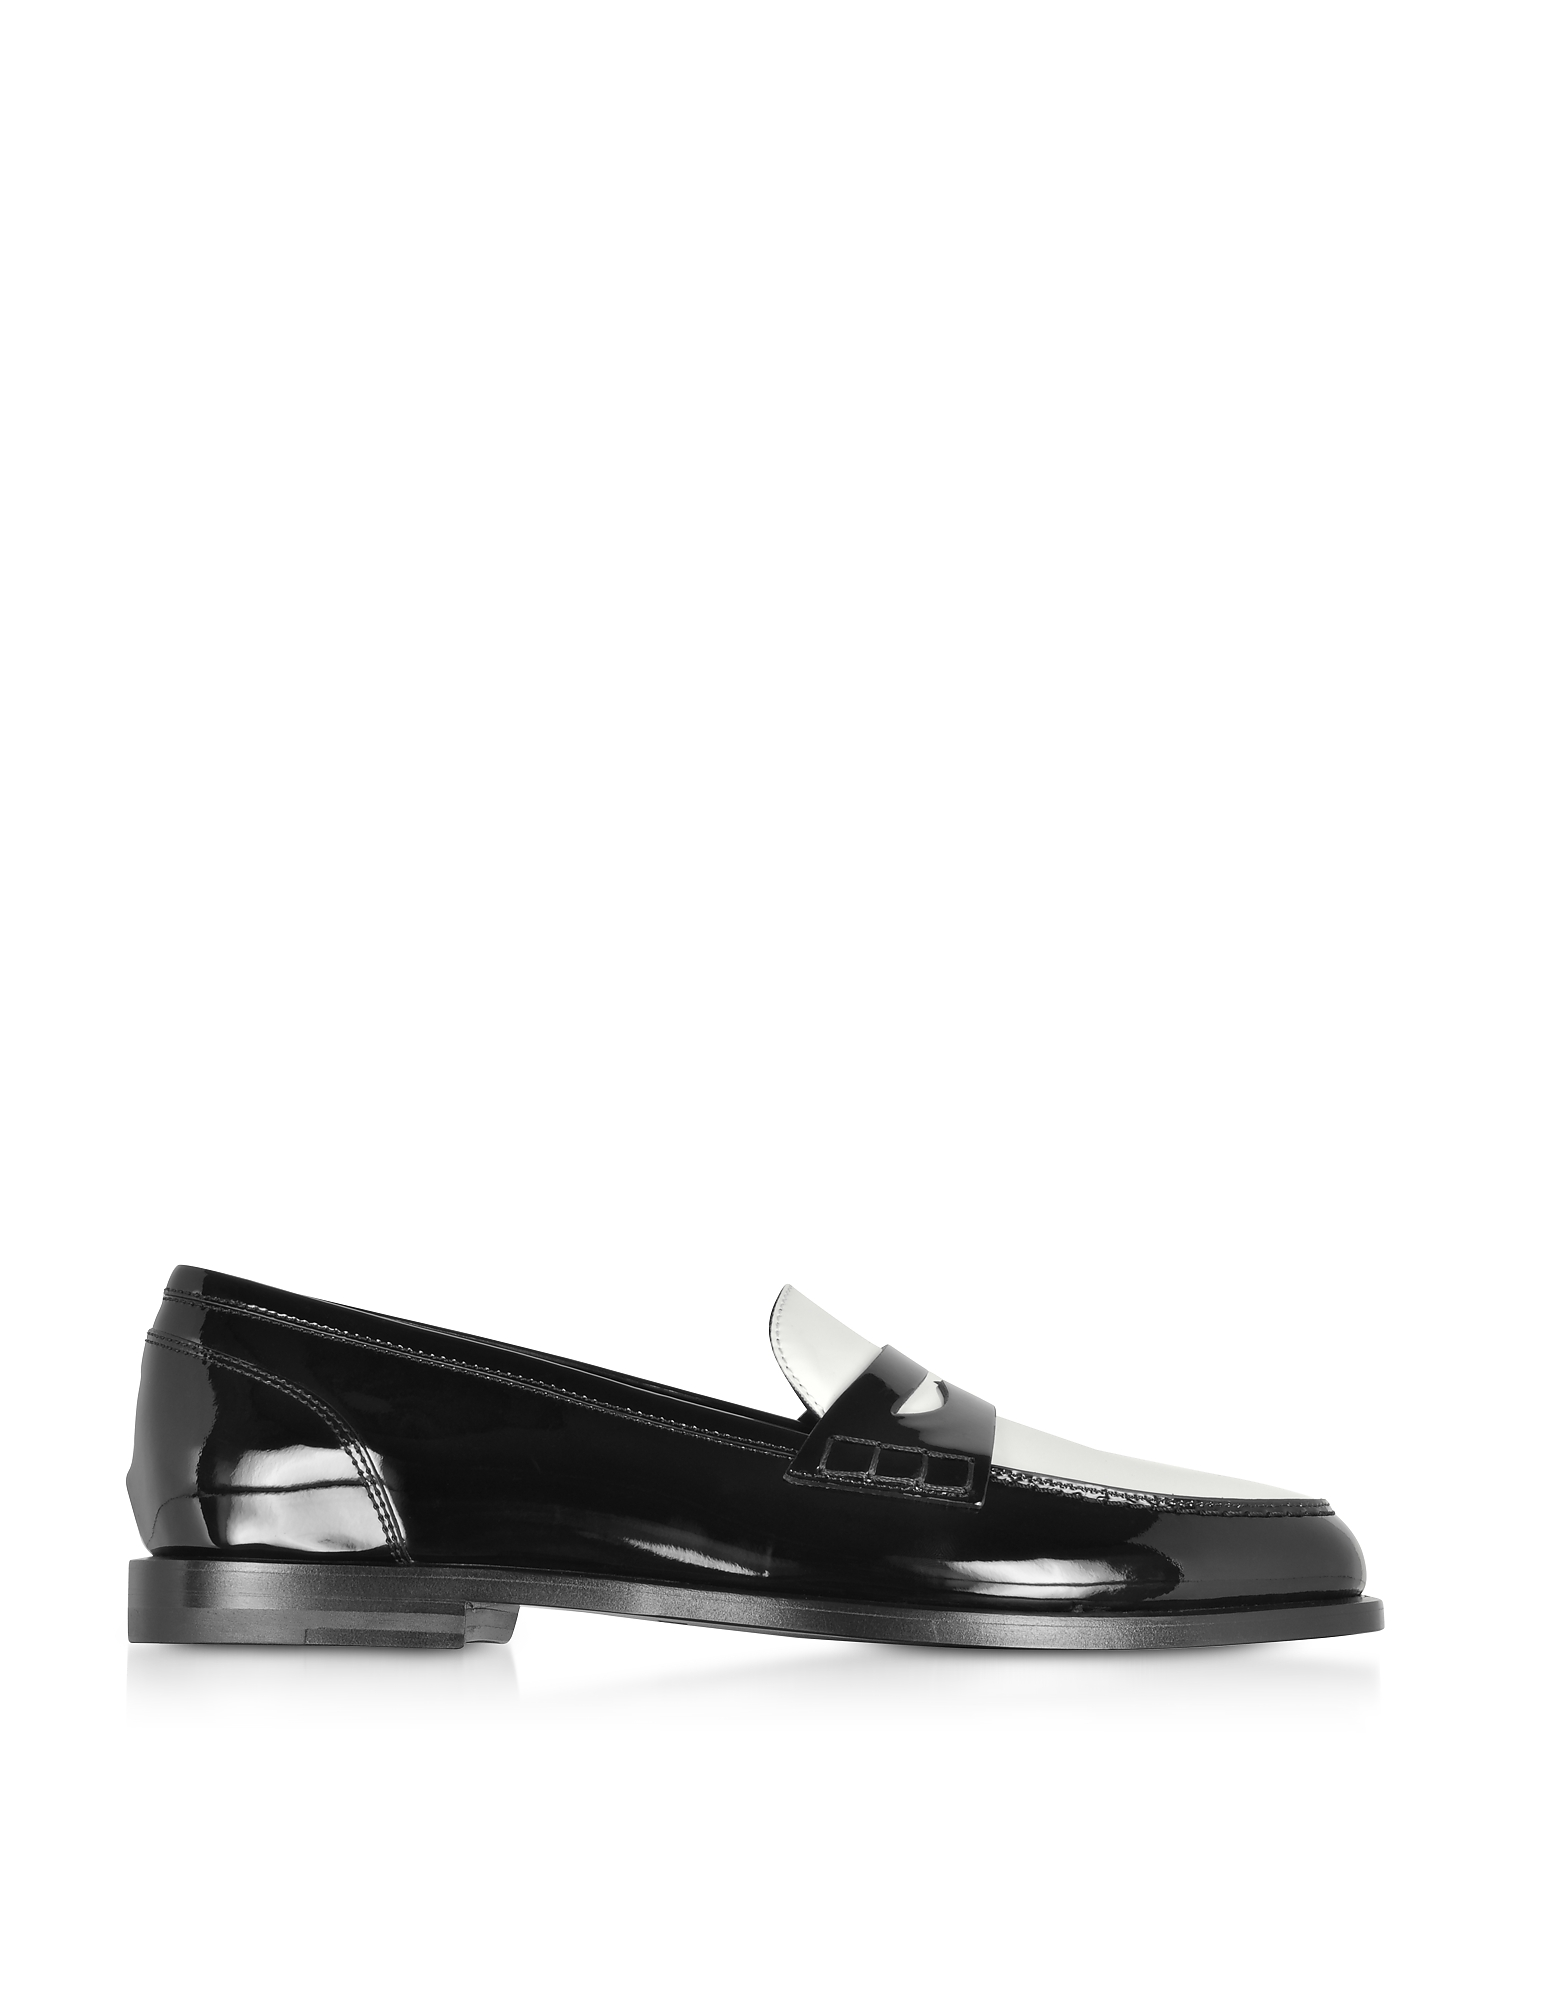 Kriss Patent Leather Loafer Shoes